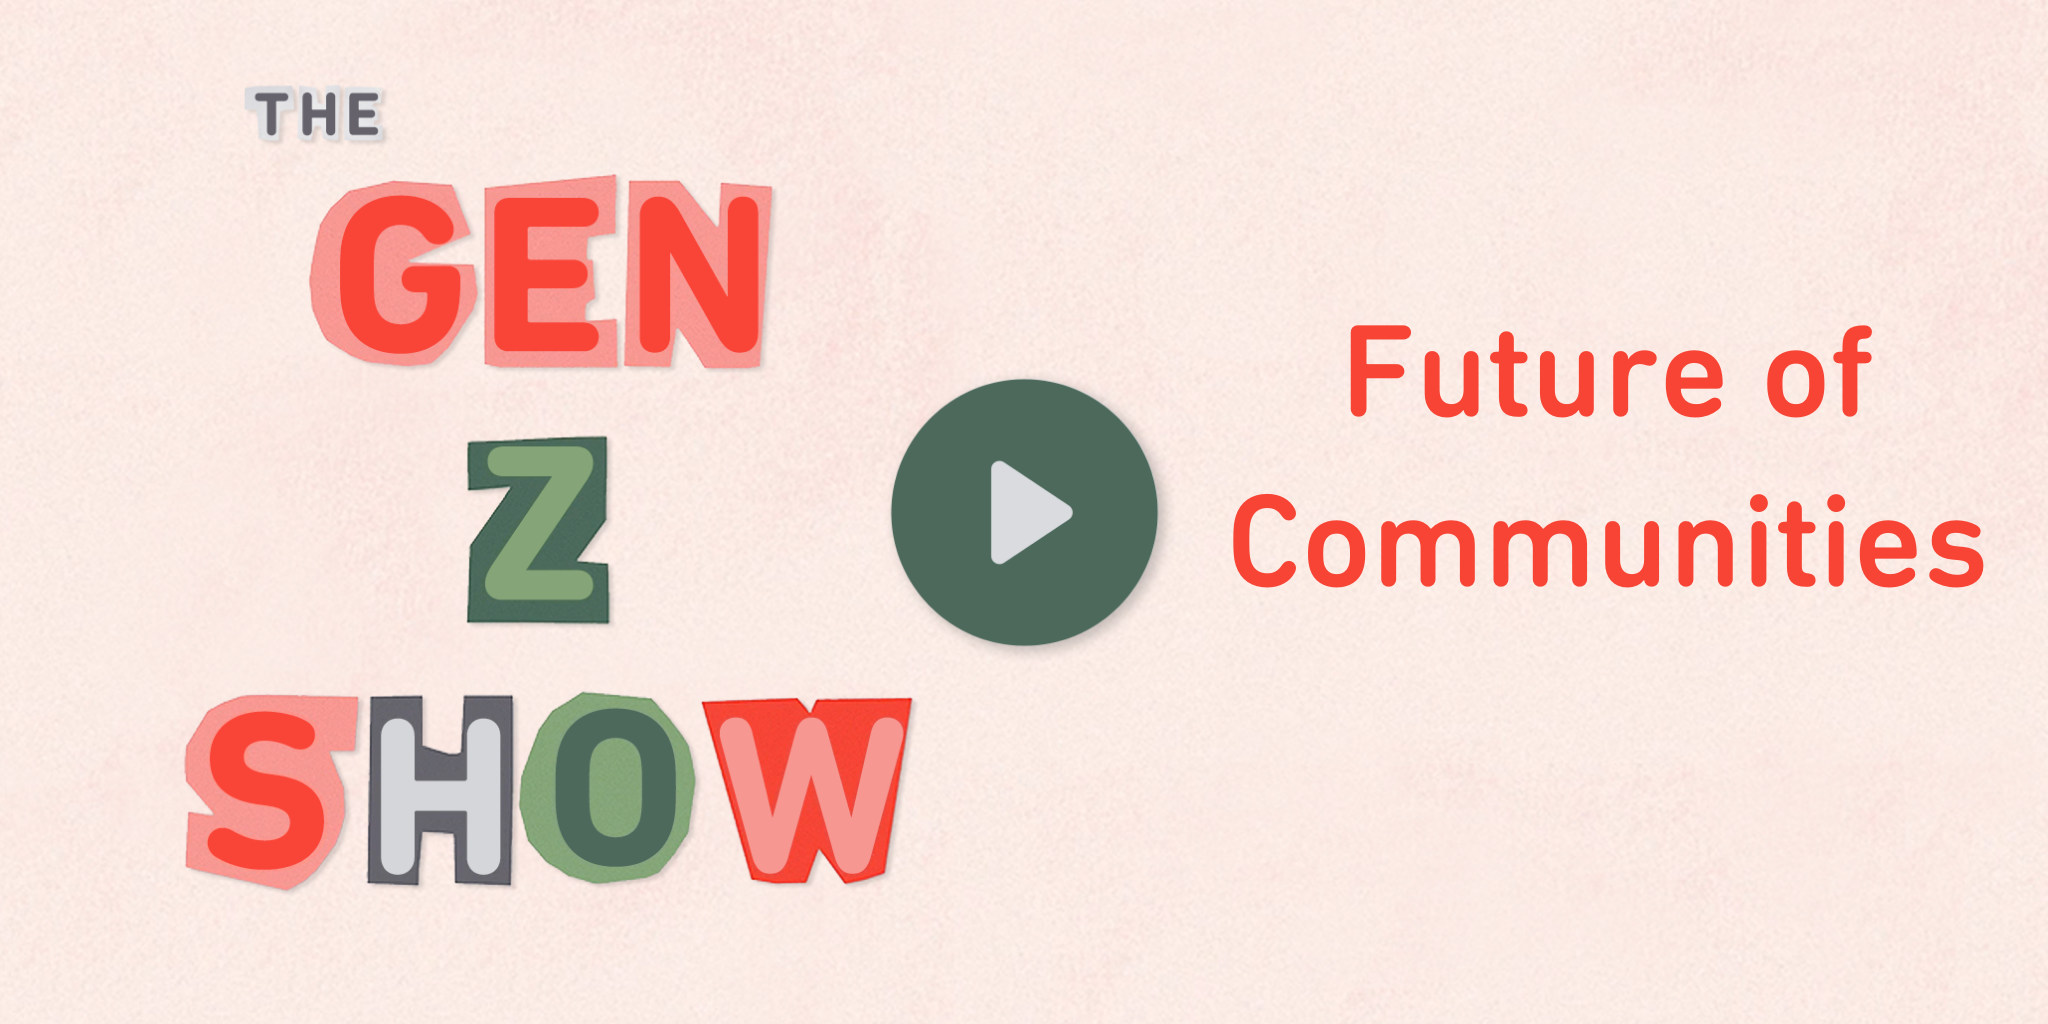 Gen Z Show Future of Communities